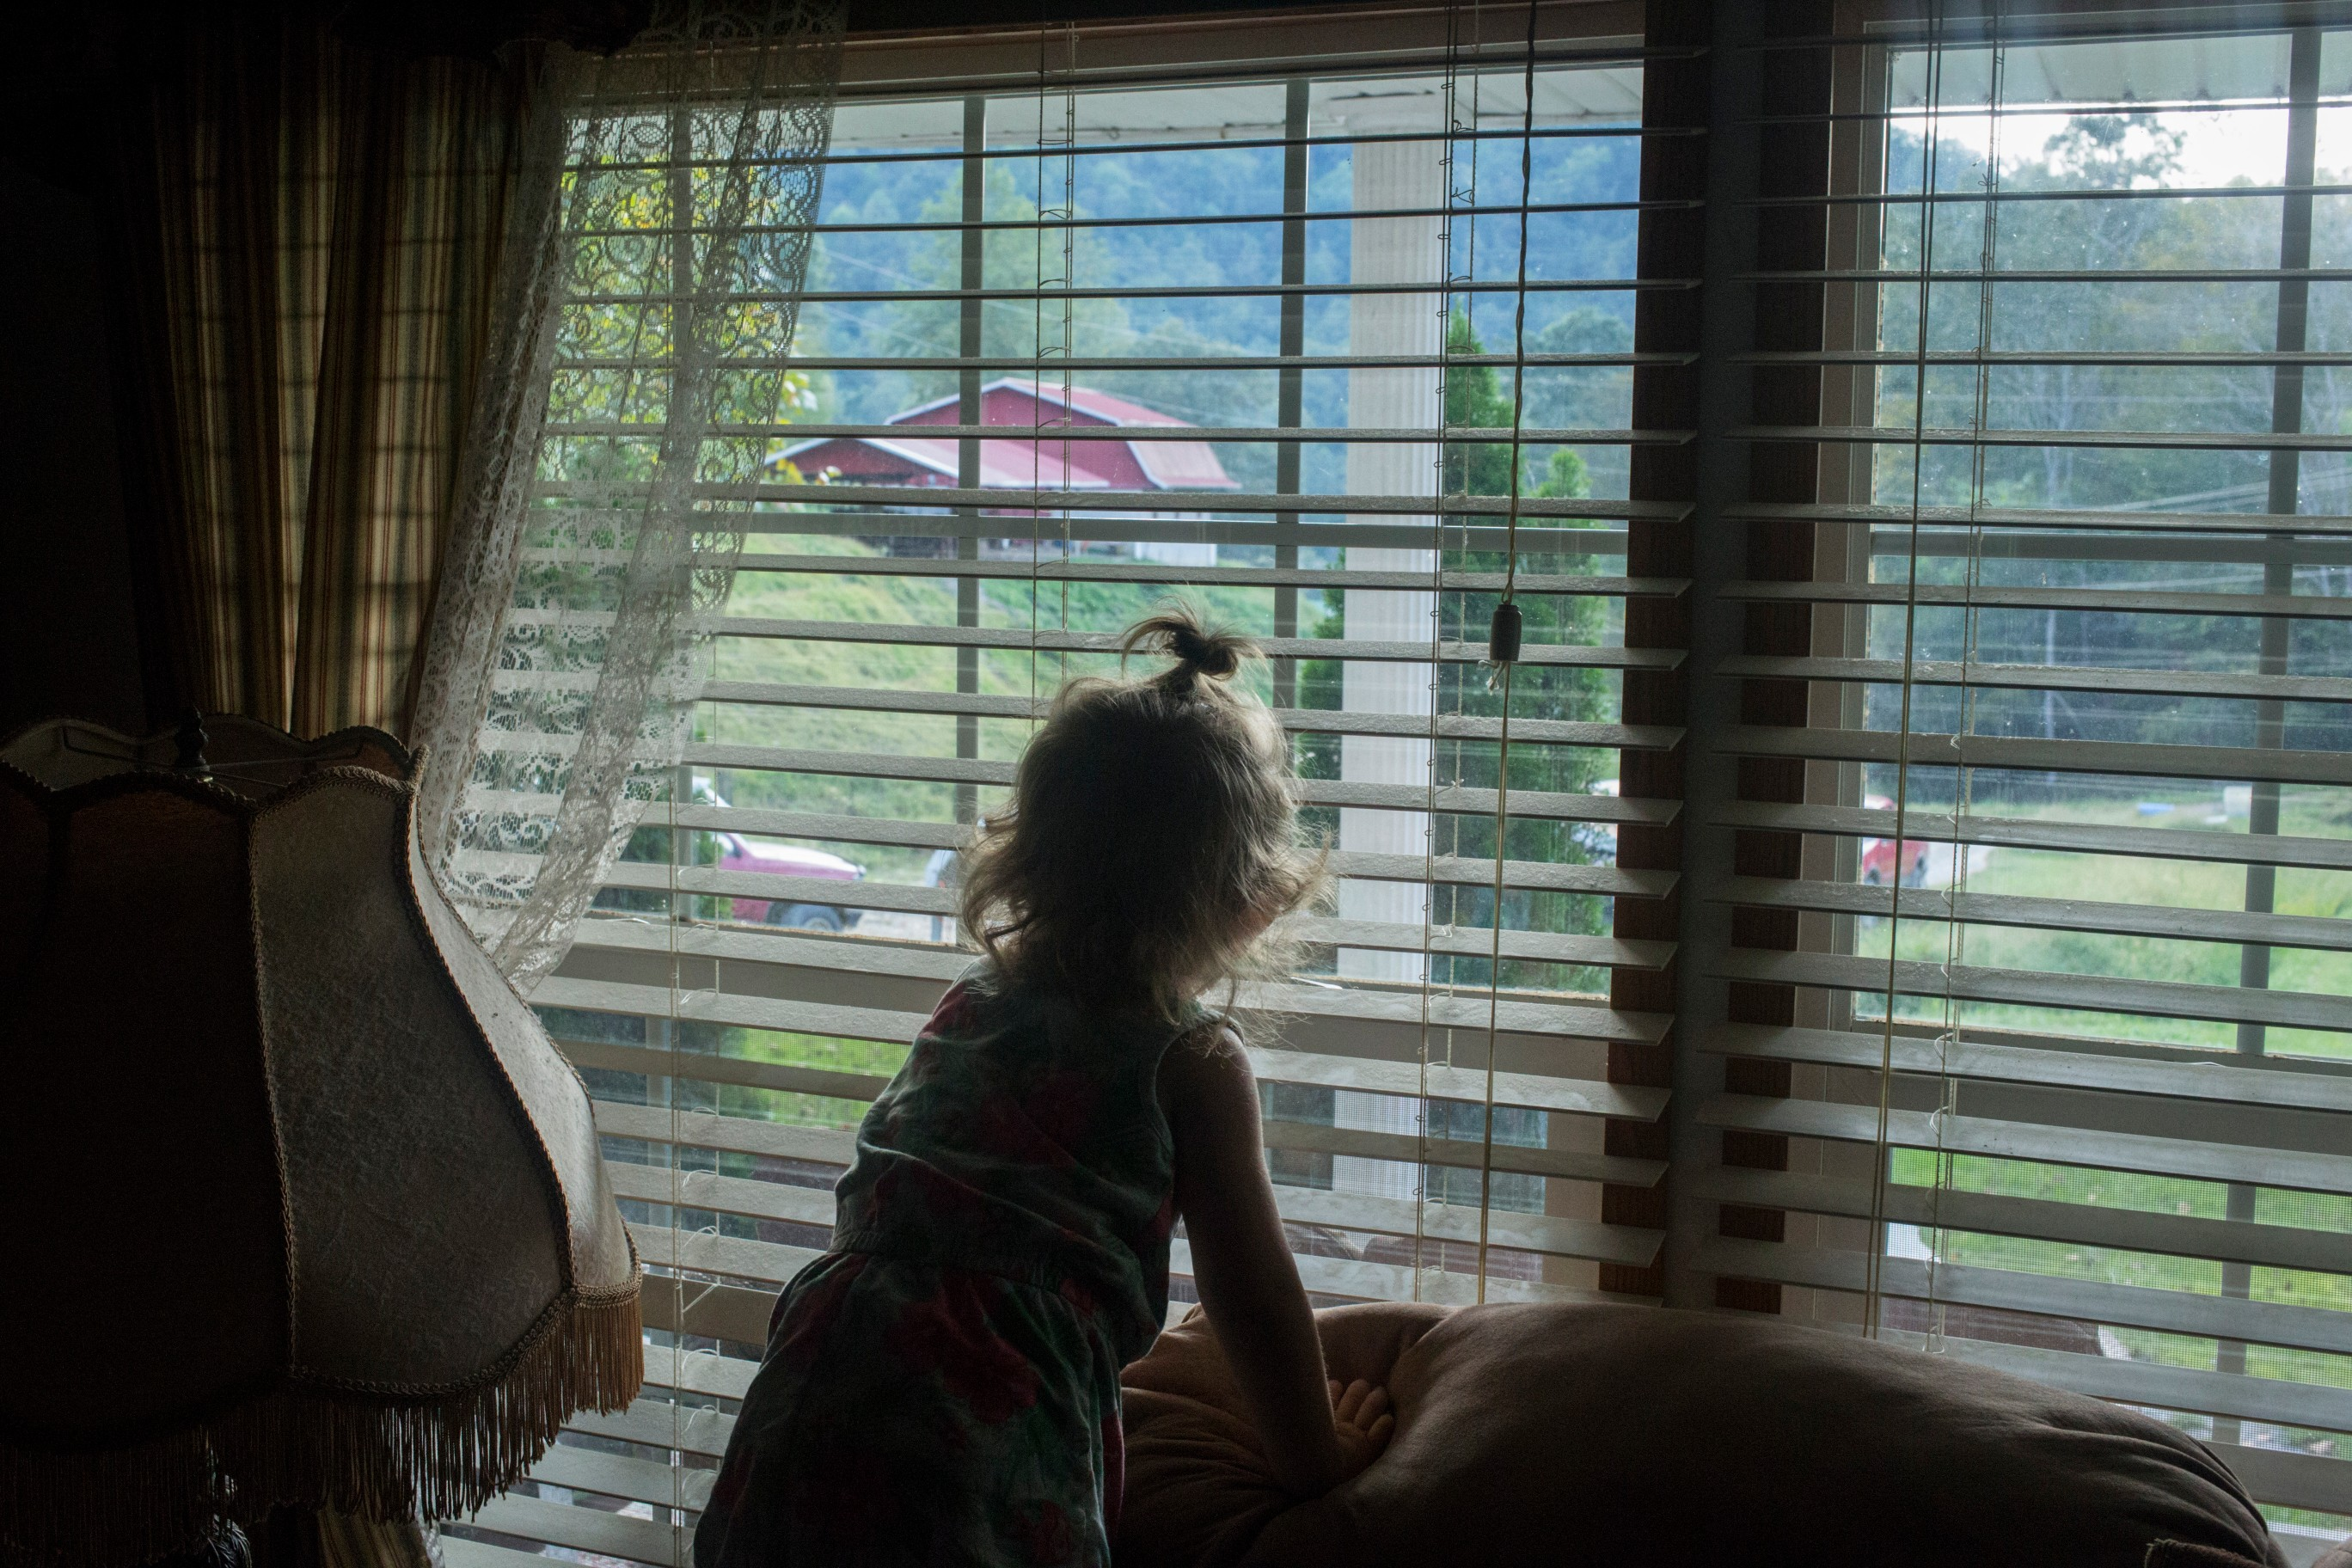 Paisley Jarvis, 2, peeks out the window of her father's living room in Langley, Ky., on Tuesday, September 26, 2017. (Photo by Brittany Greeson/GroundTruth)